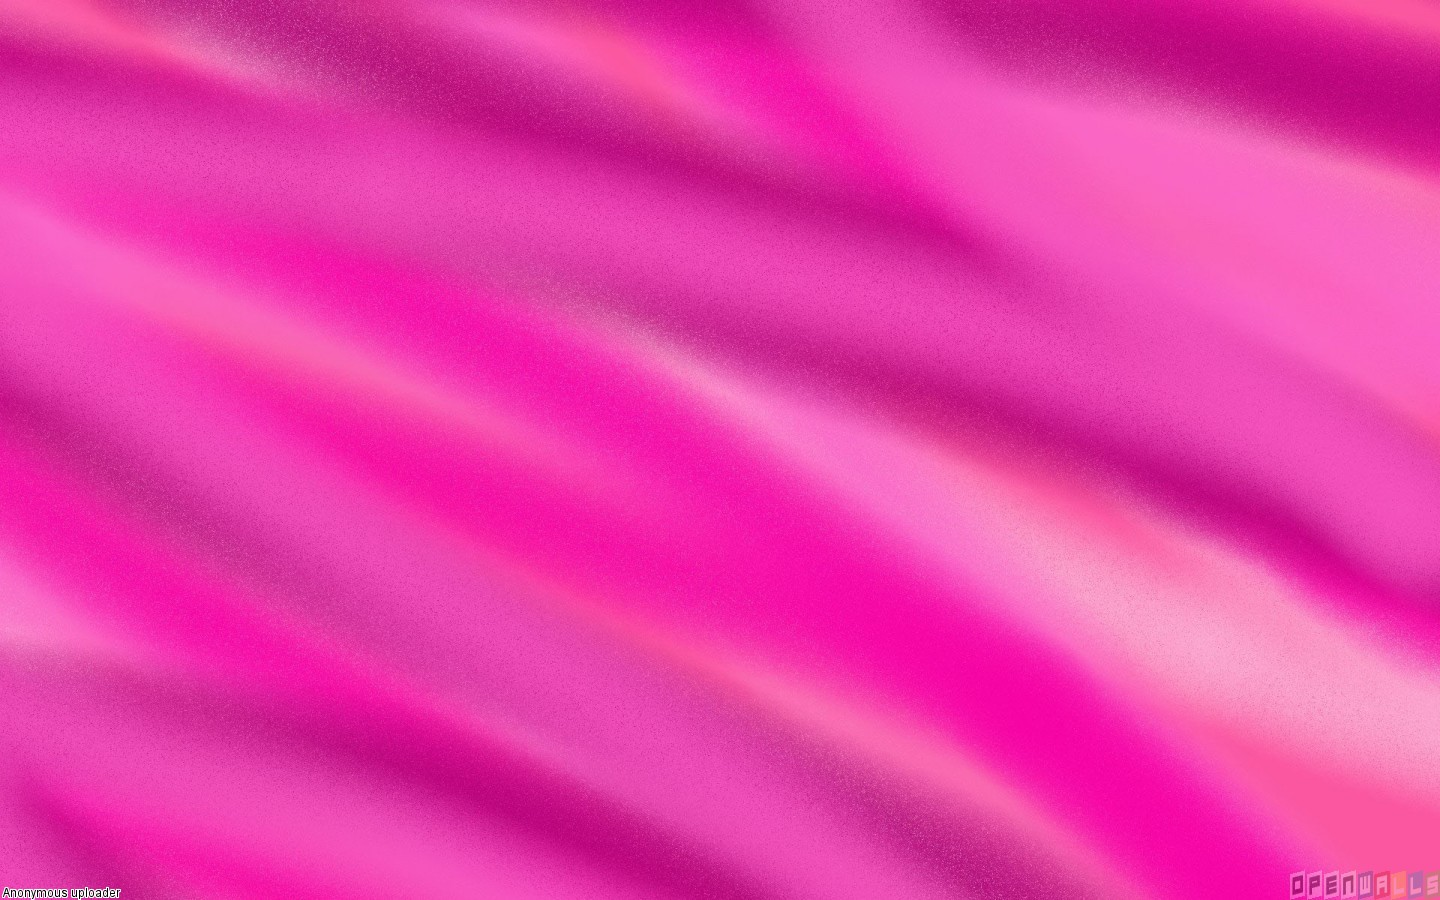 Pink background wallpaper 15969   Open Walls 1440x900